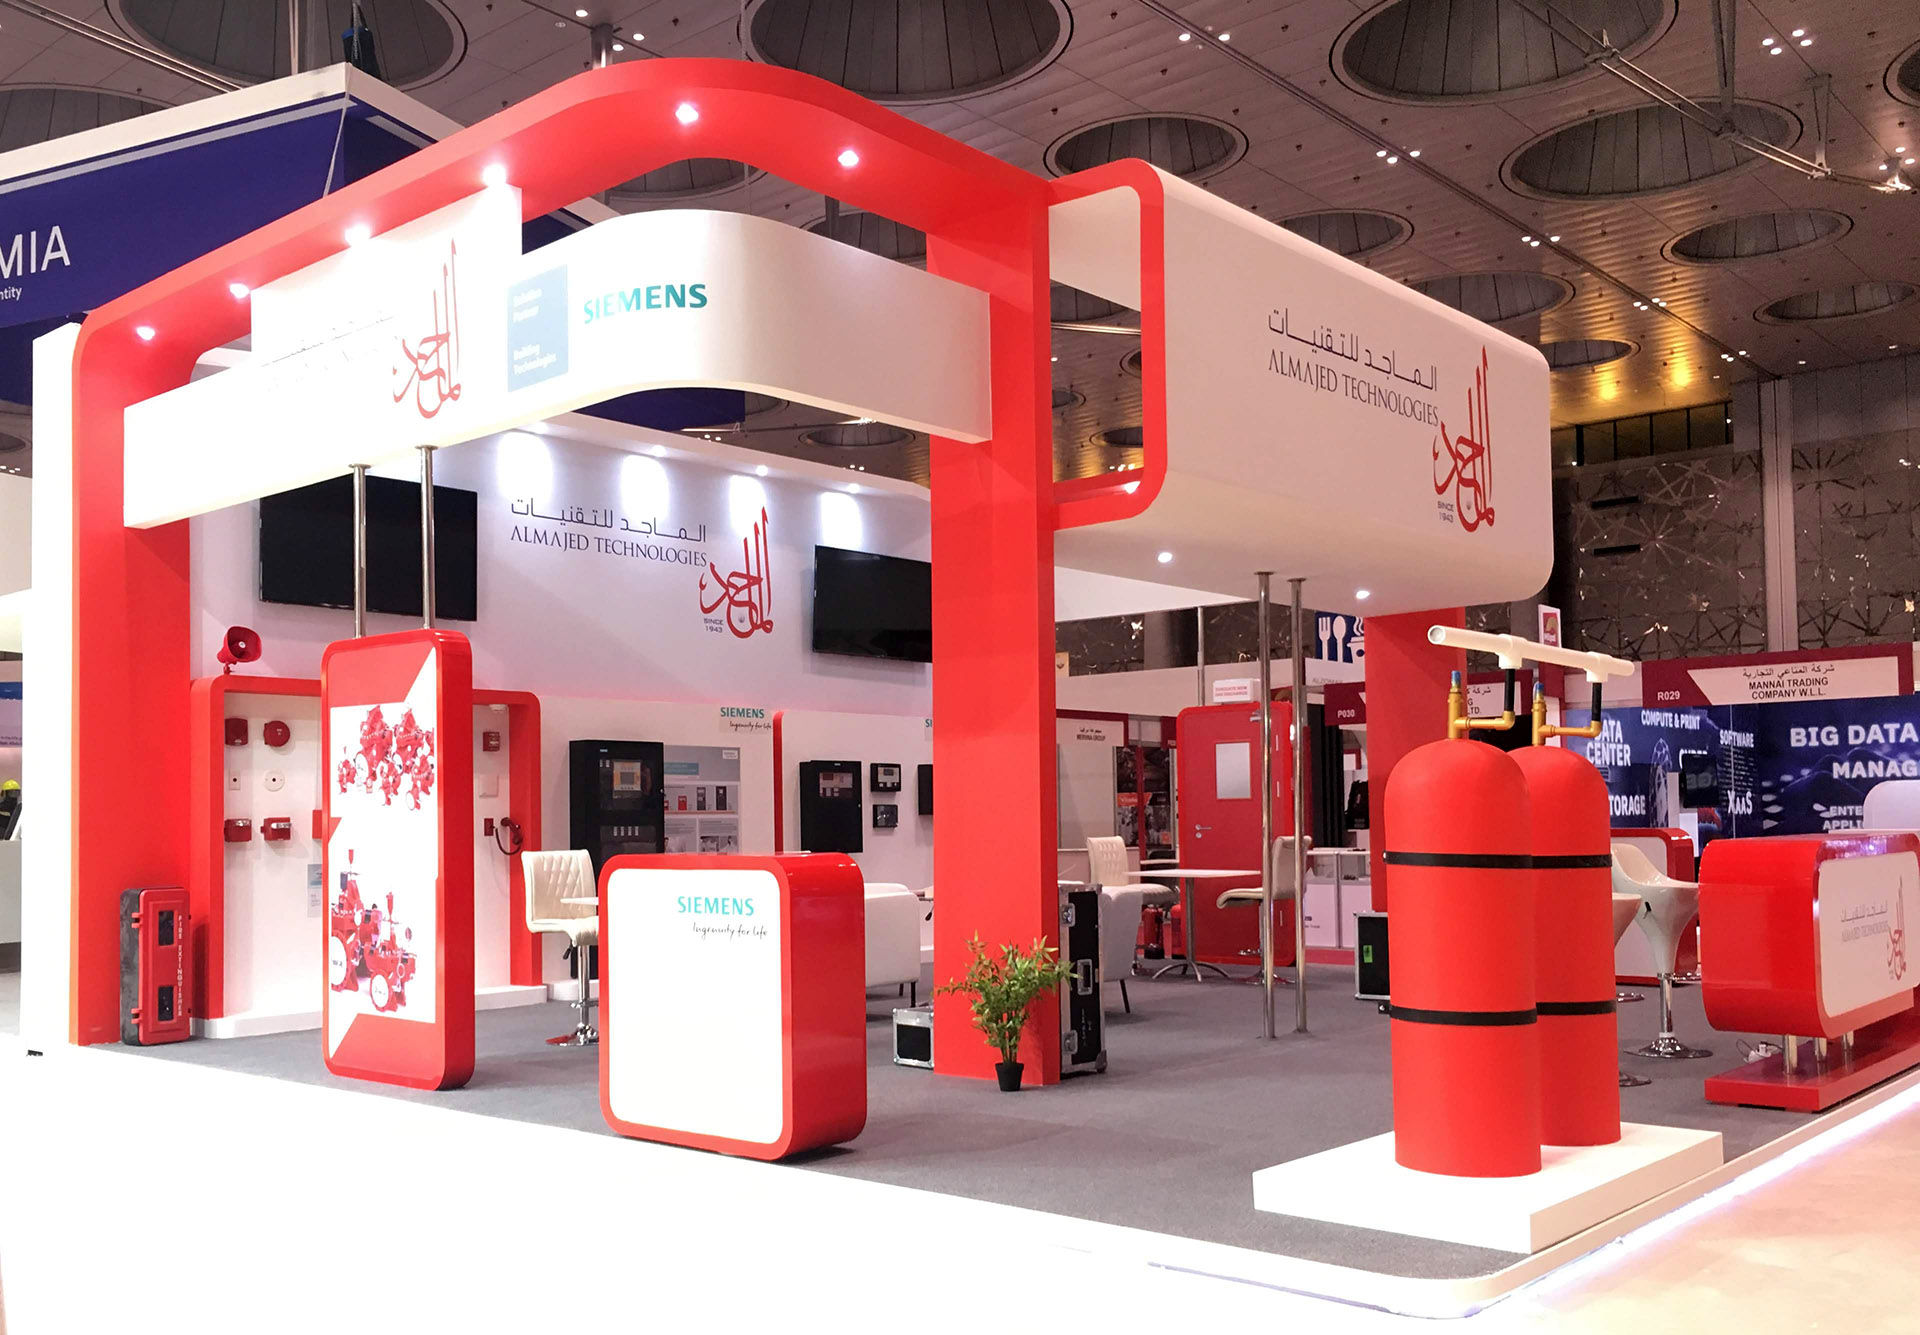 Exhibition Stand for Al Majed Technologies at Milipol 2018 designed, fabricated and installed by ME Visual, Qatar